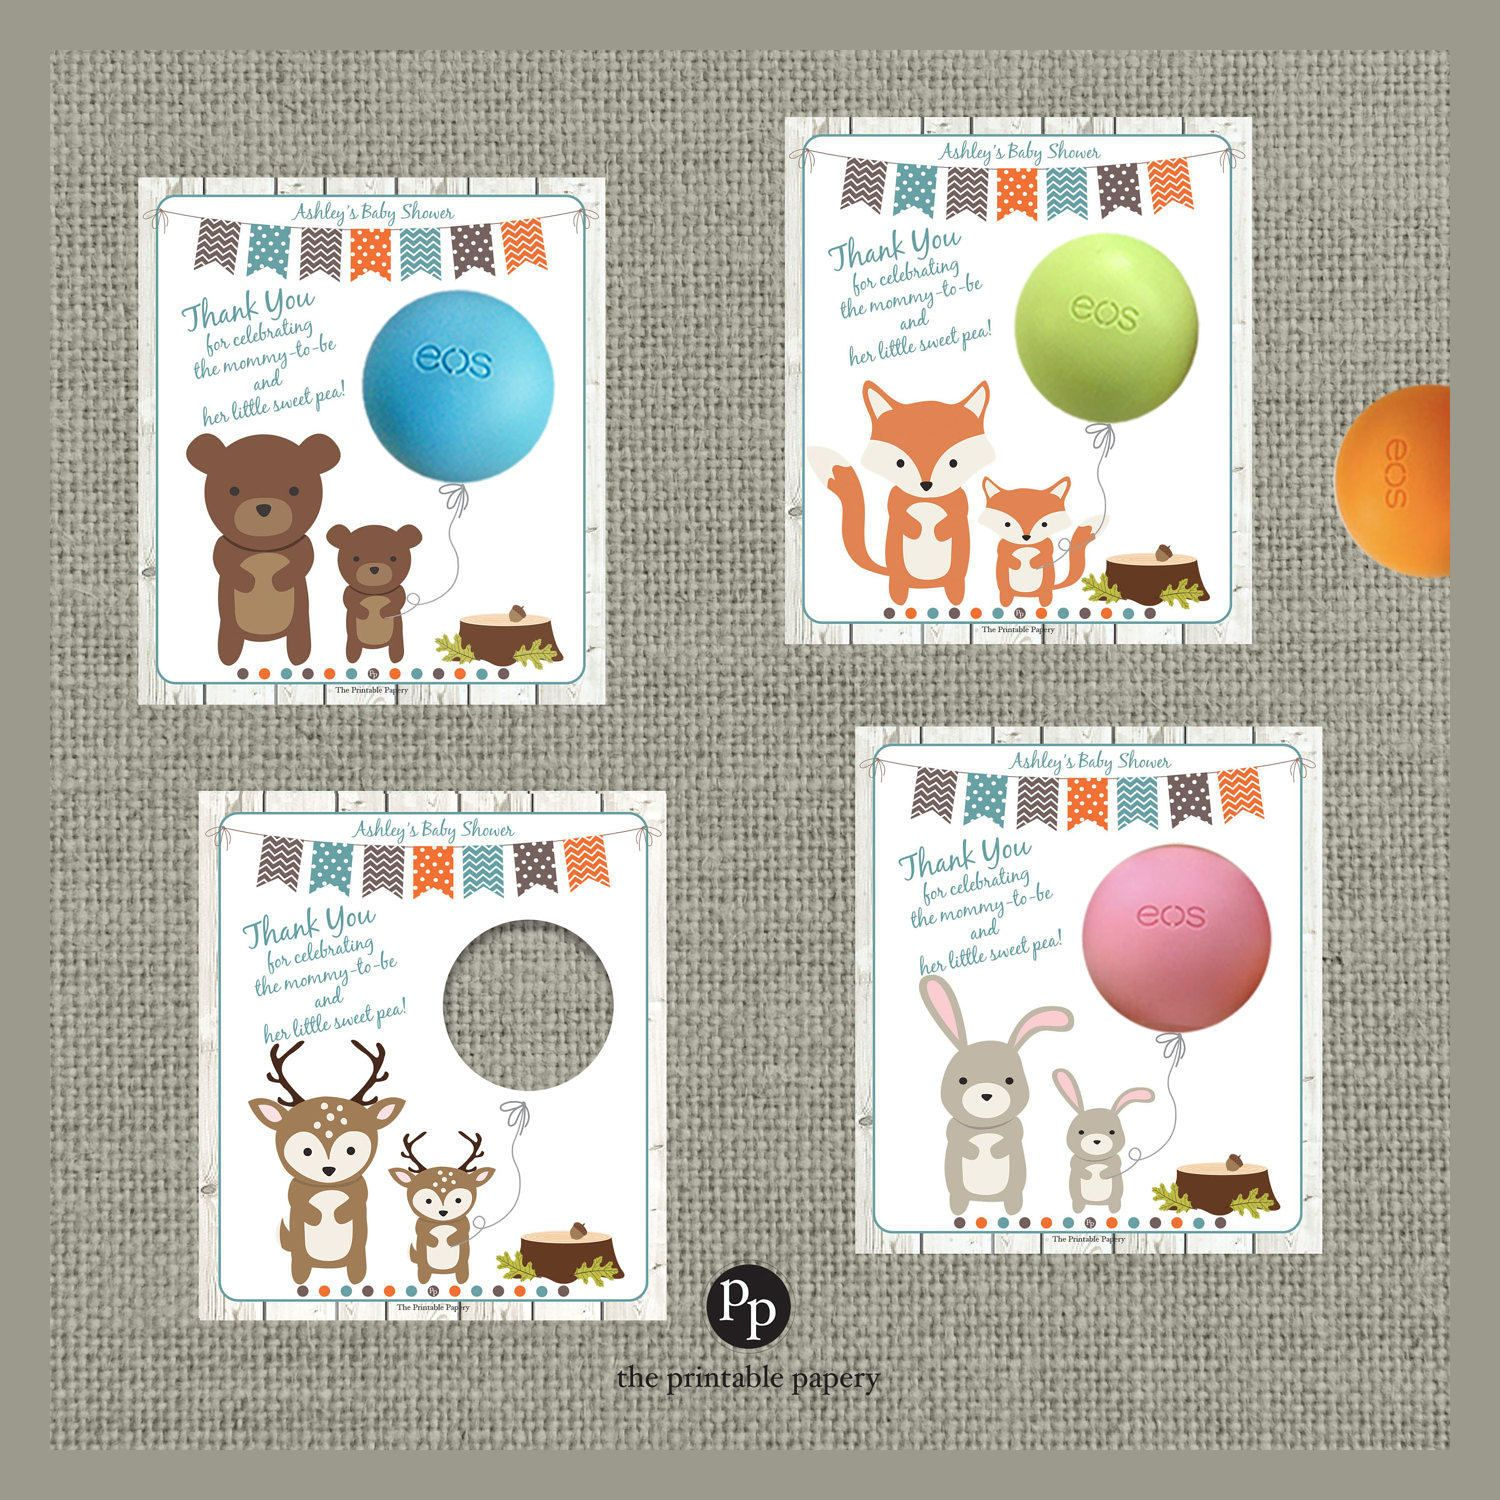 Printable Woodland Animal Baby Shower Gift Tags for EOS lip balm